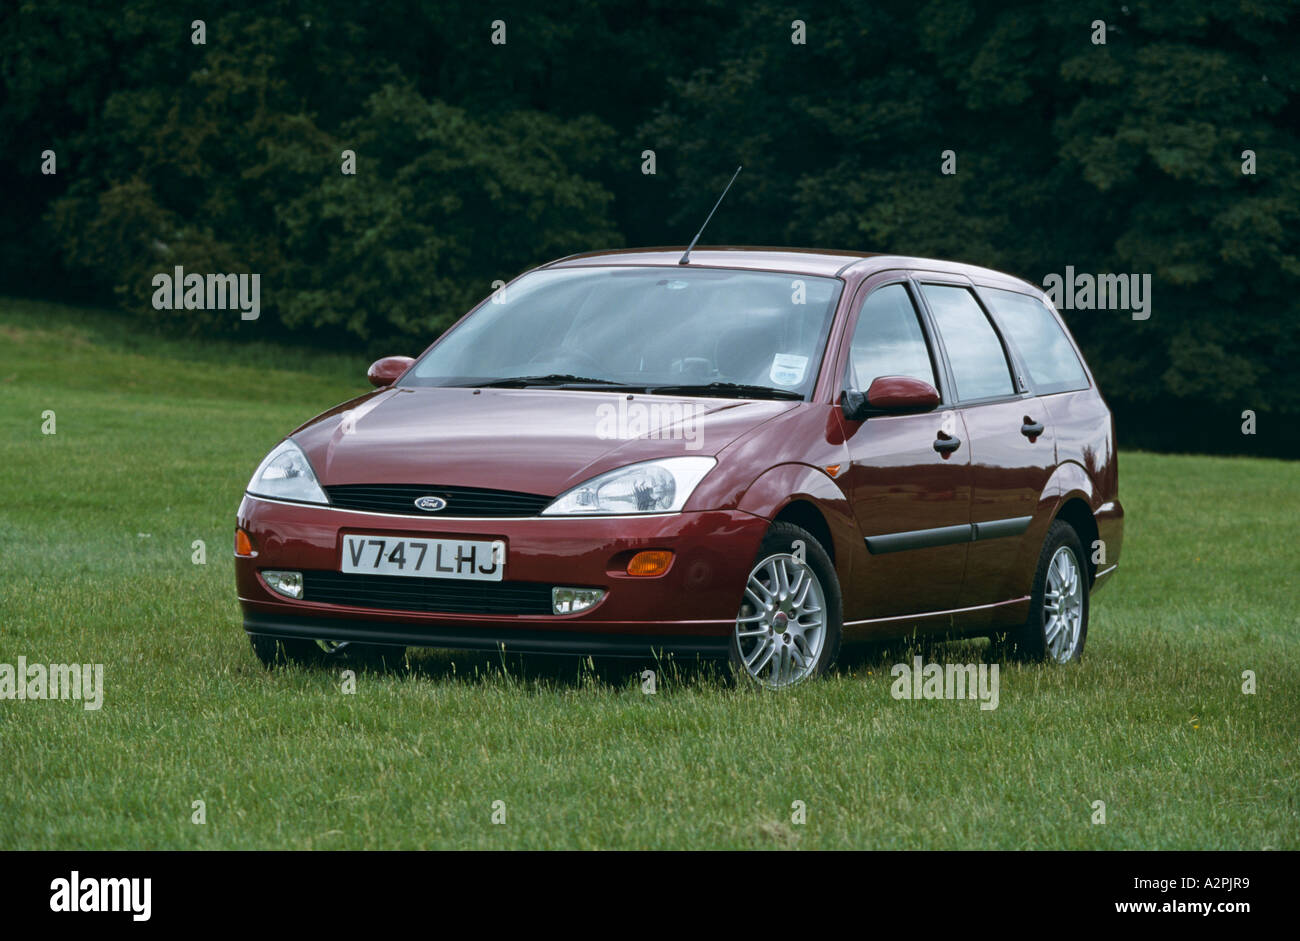 Ford Focus Estate Model Years 1998 To 2001 Stock Photo 6042616 Alamy